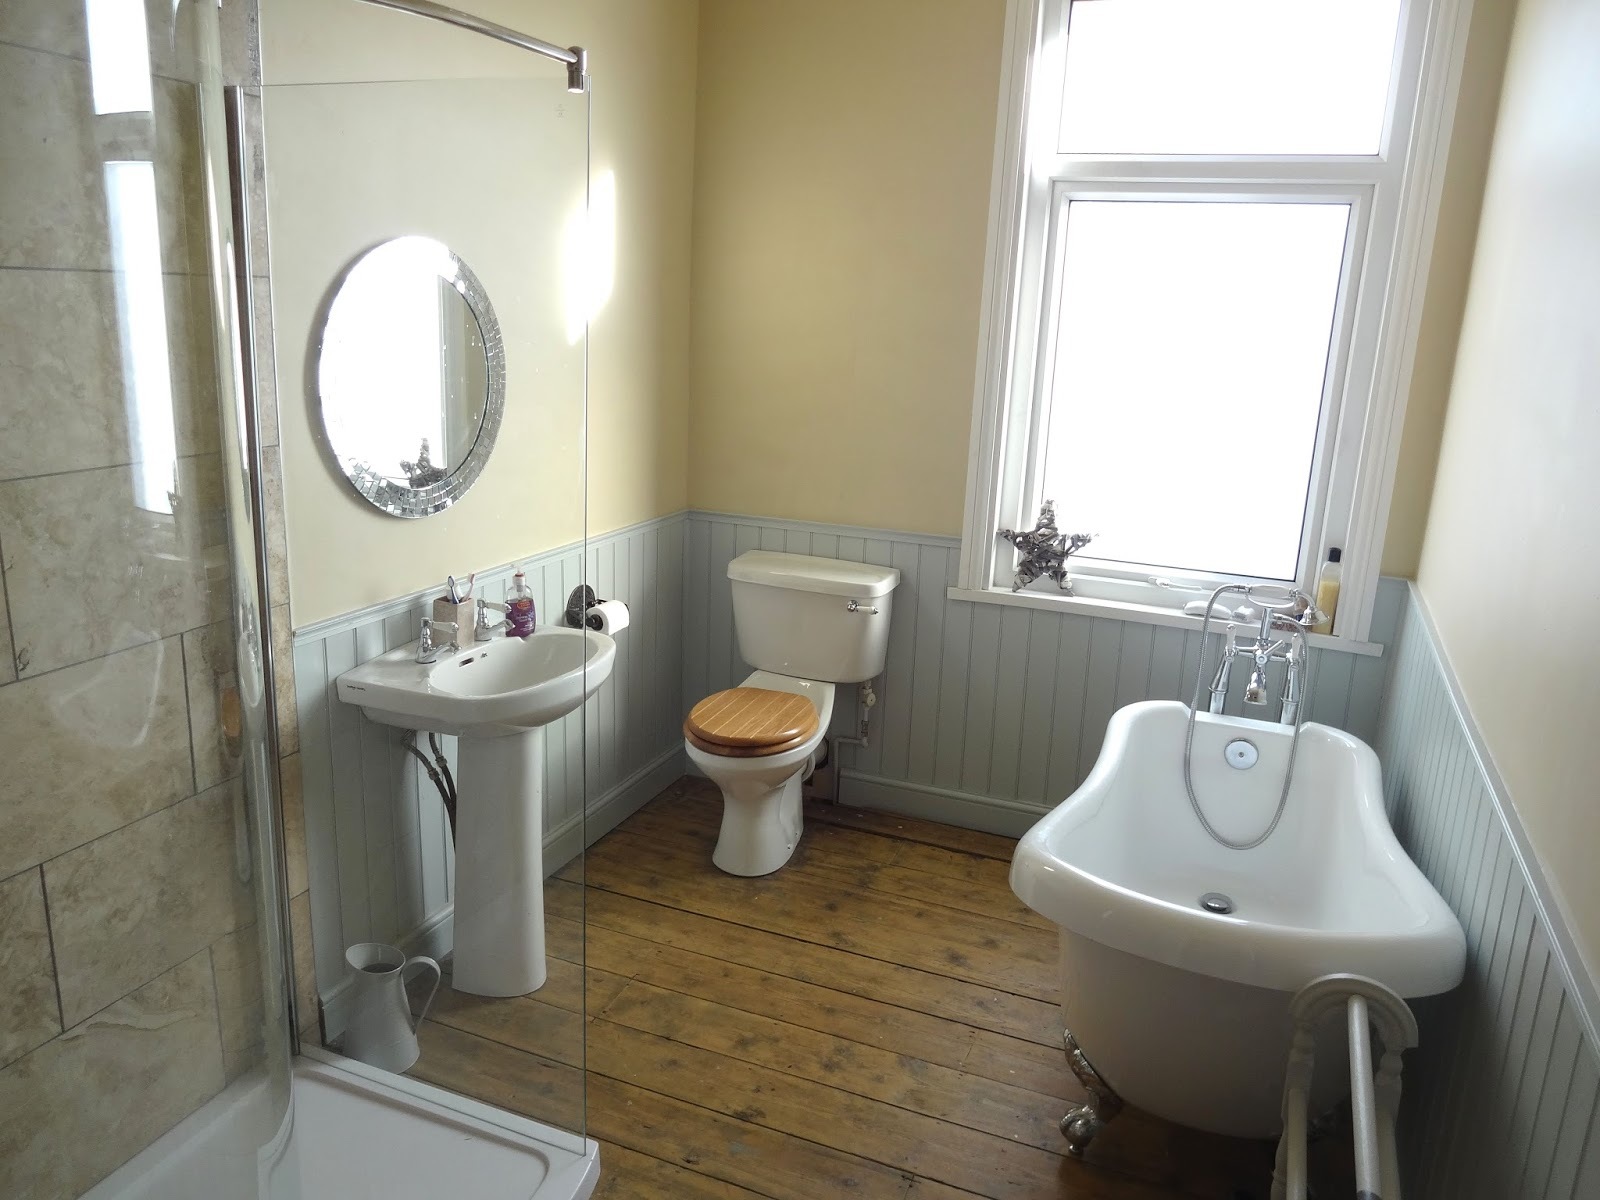 Diy Bathroom Renovation Uk kezzabeth.co.uk | uk home renovation, interiors and diy blog